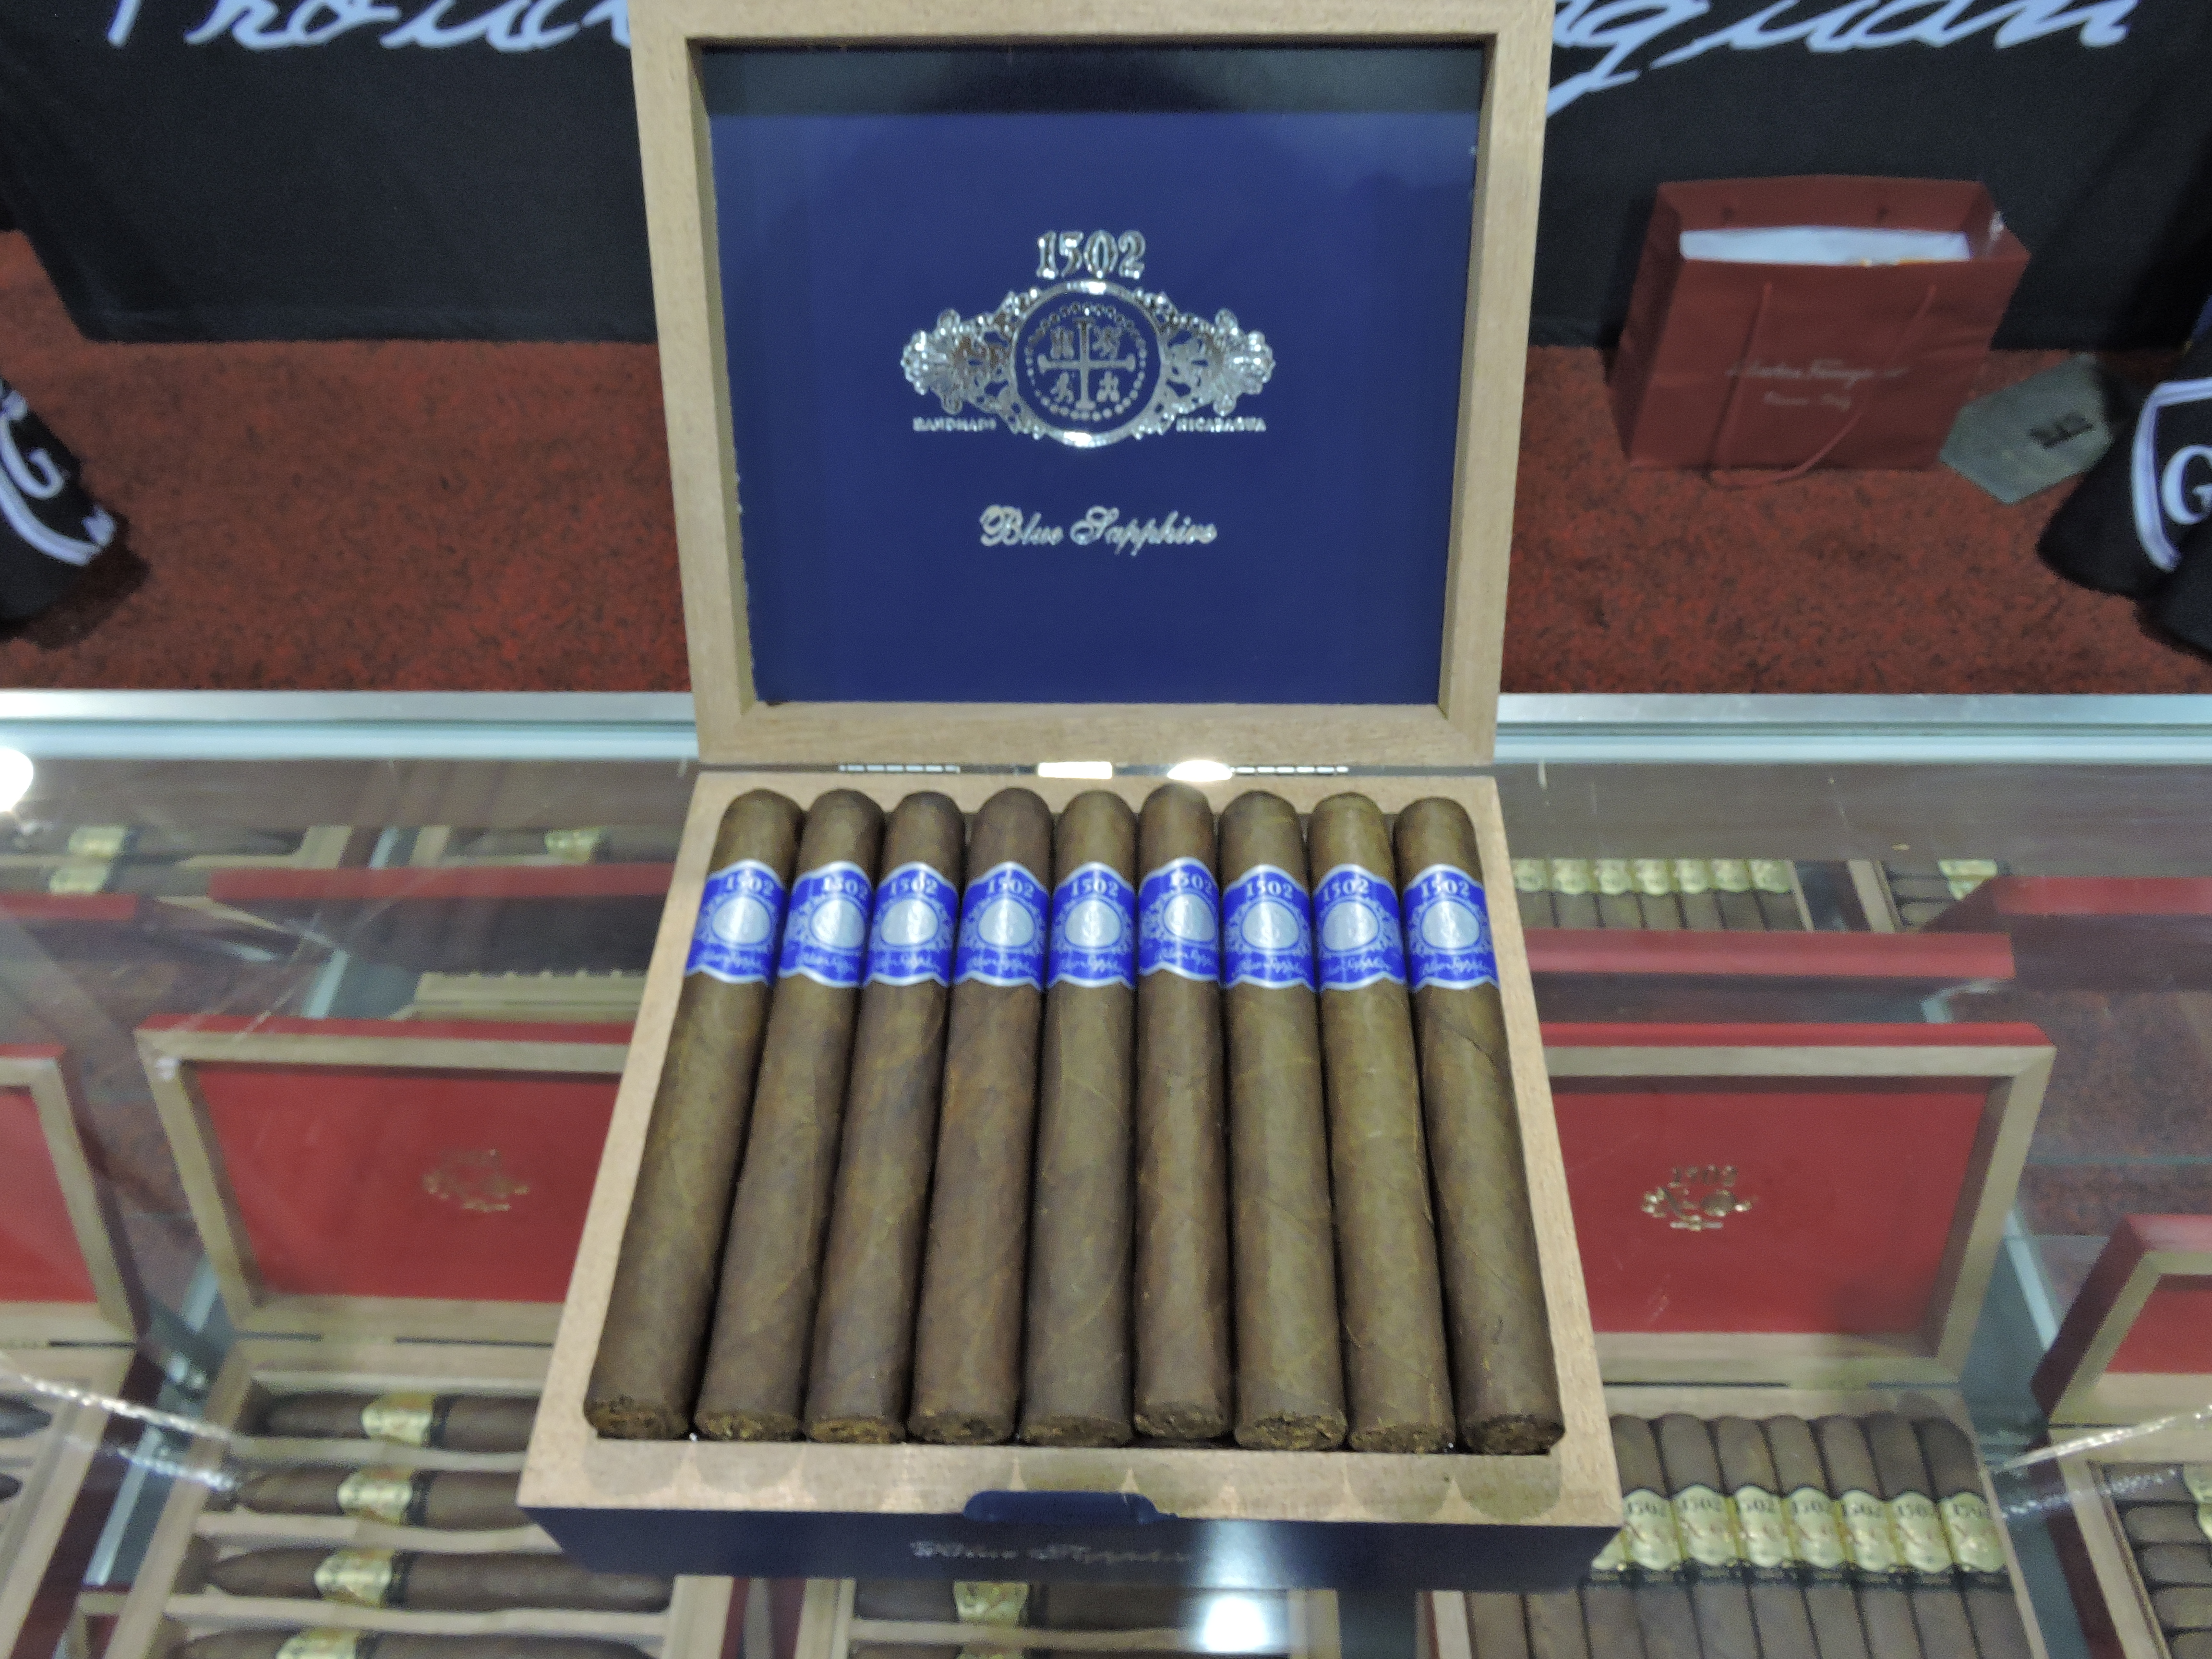 Cigar News: 1502 Cigars' 1502 Blue Sapphire Makes Debut at 2016 IPCPR